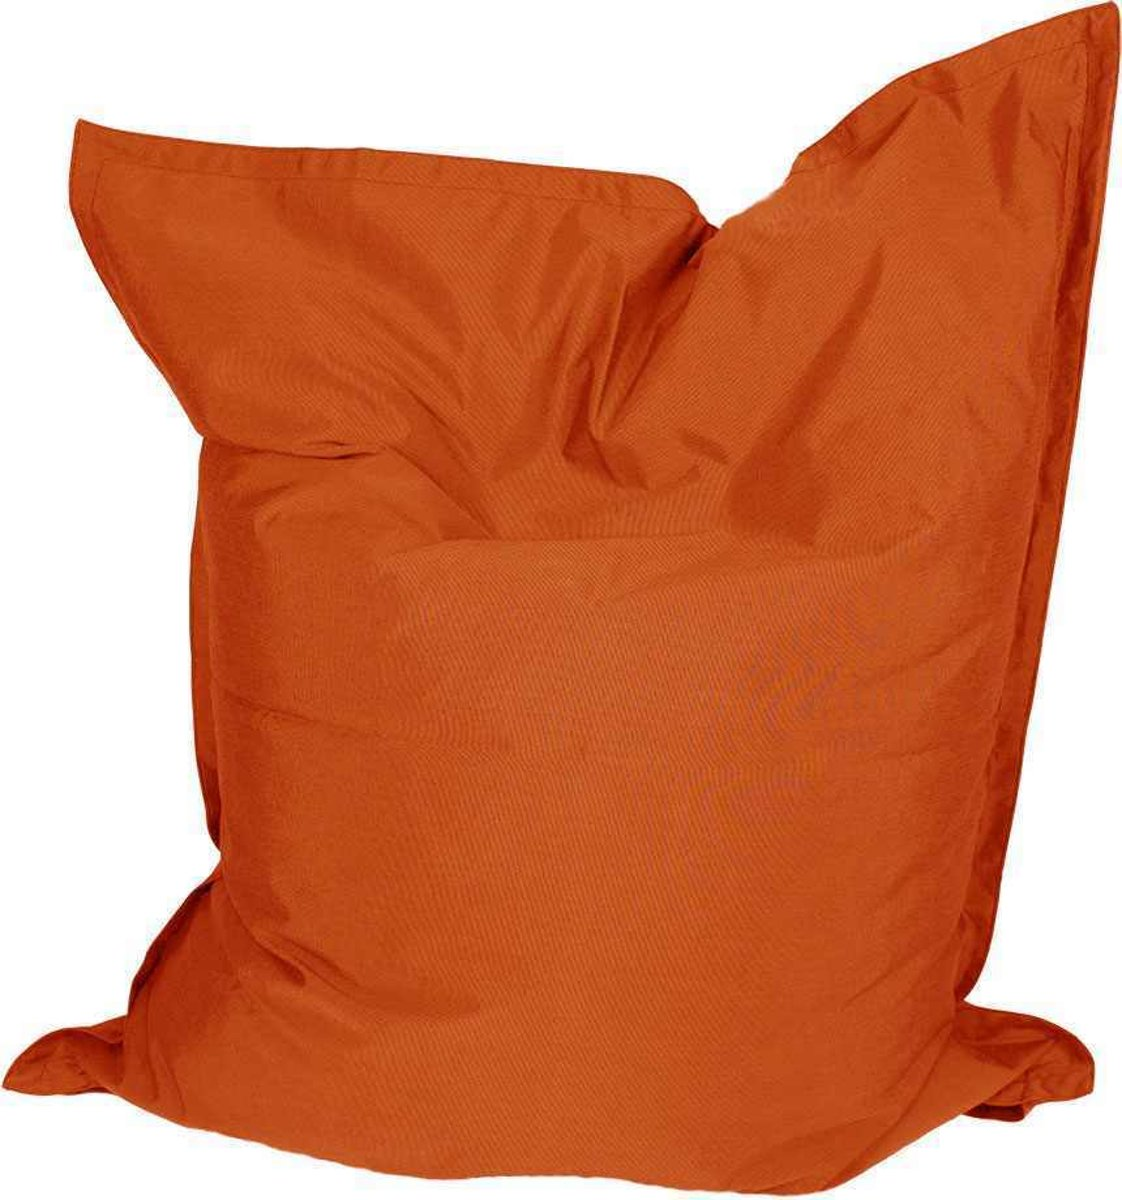 Zitzak Outdoor Cartenza Light Orange 101 Maat L kopen